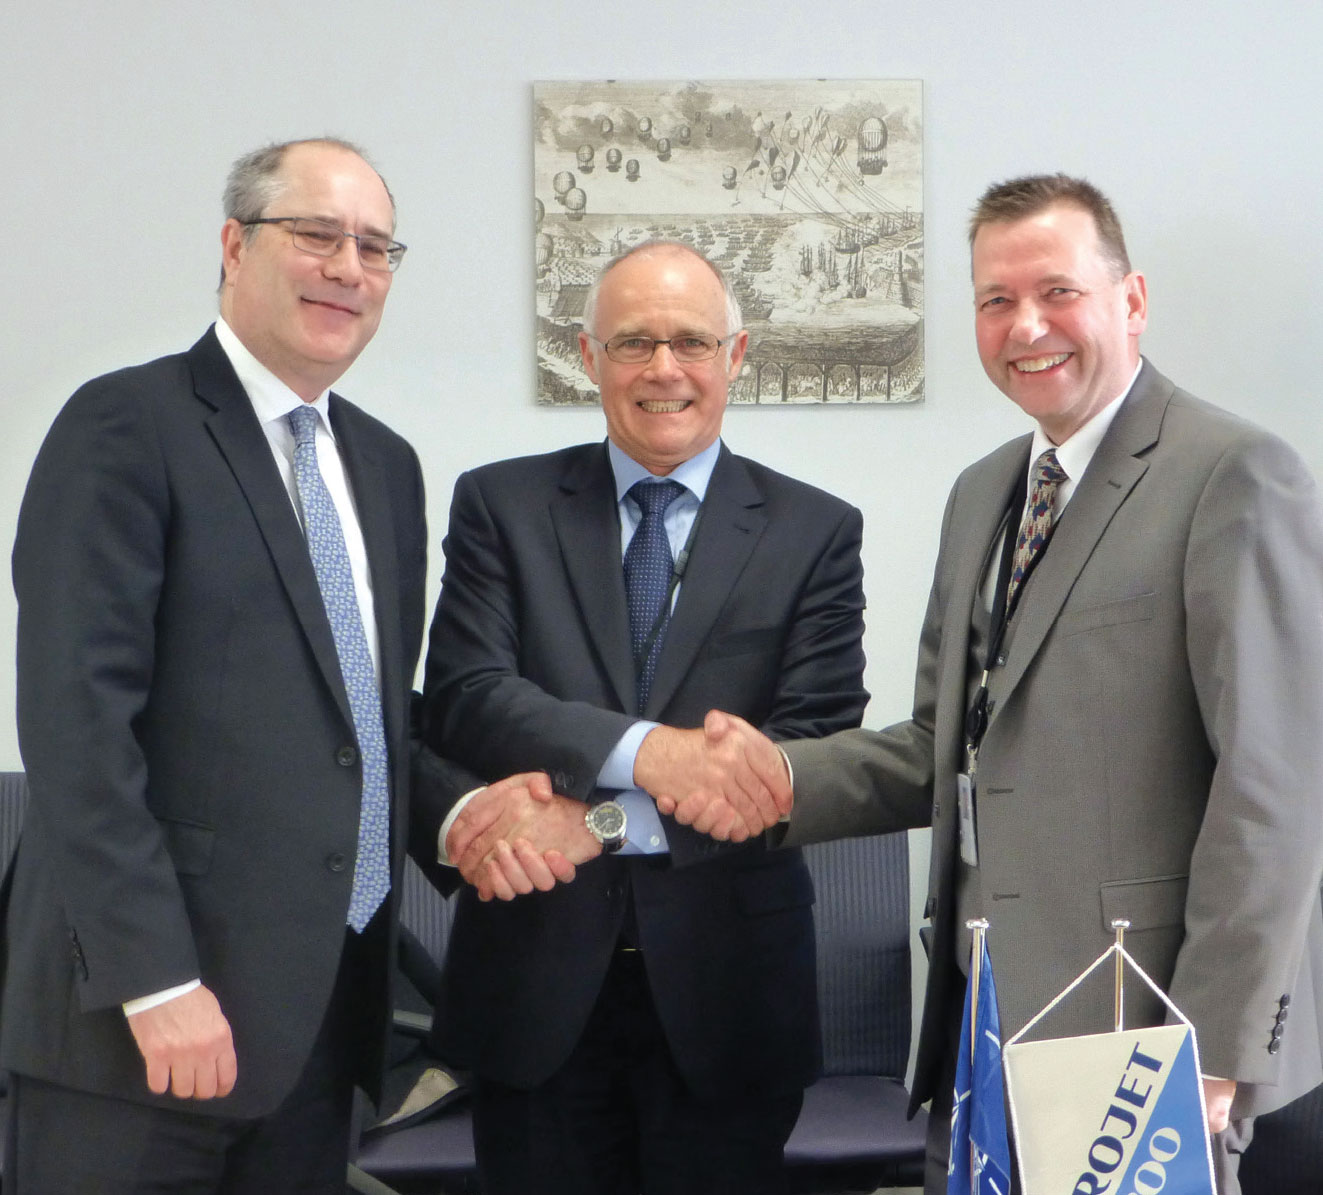 EUROJET Signs 3-Year EJ200 Engine Support Contract with NETMA